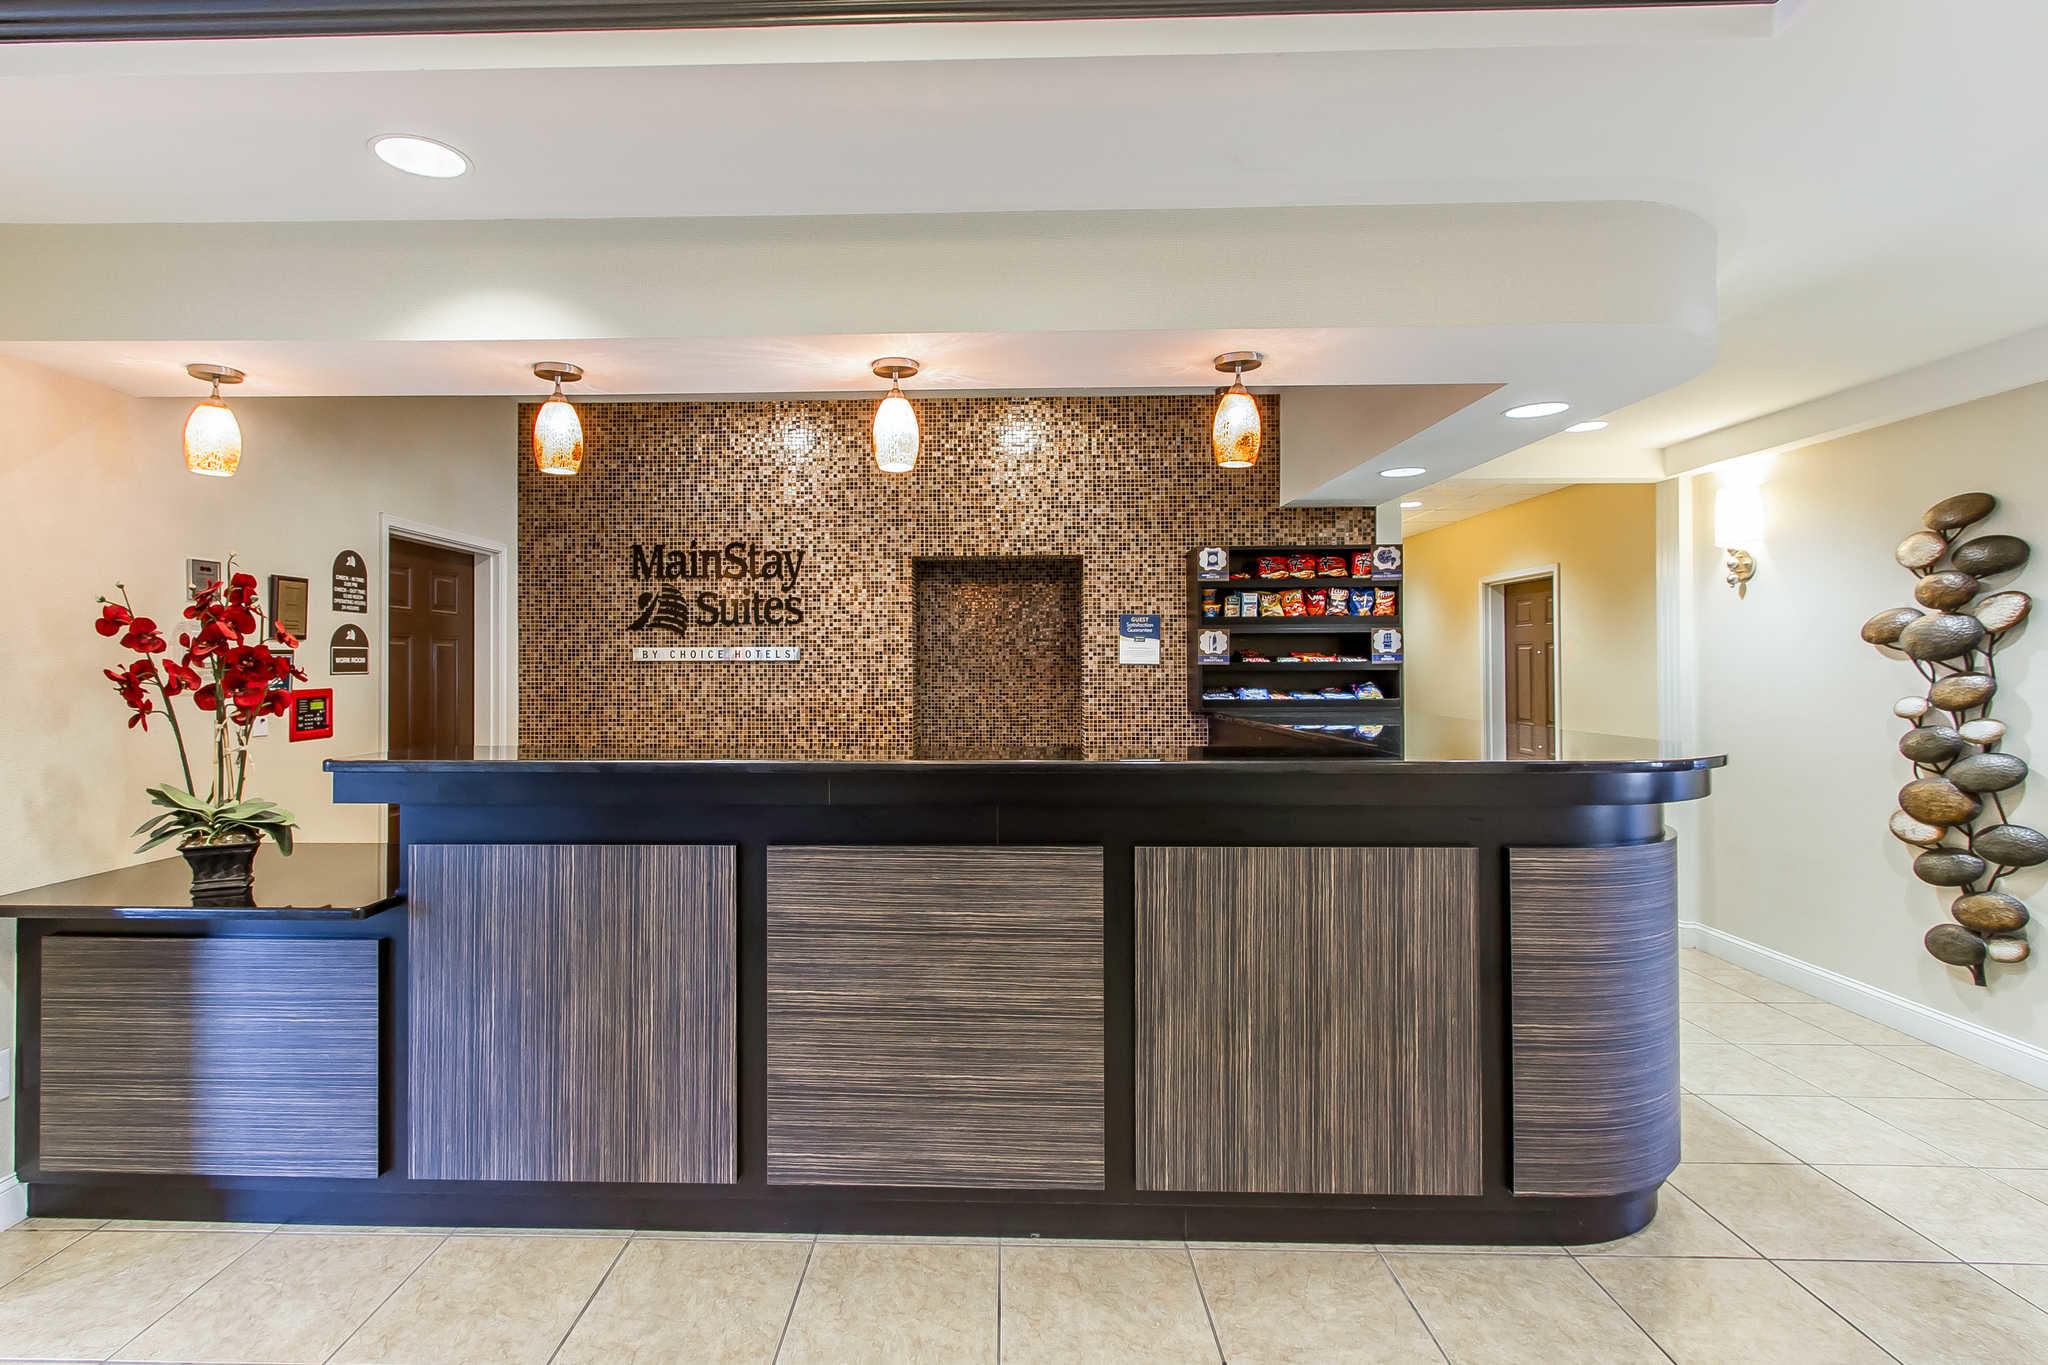 MainStay Suites Fort Campbell image 6